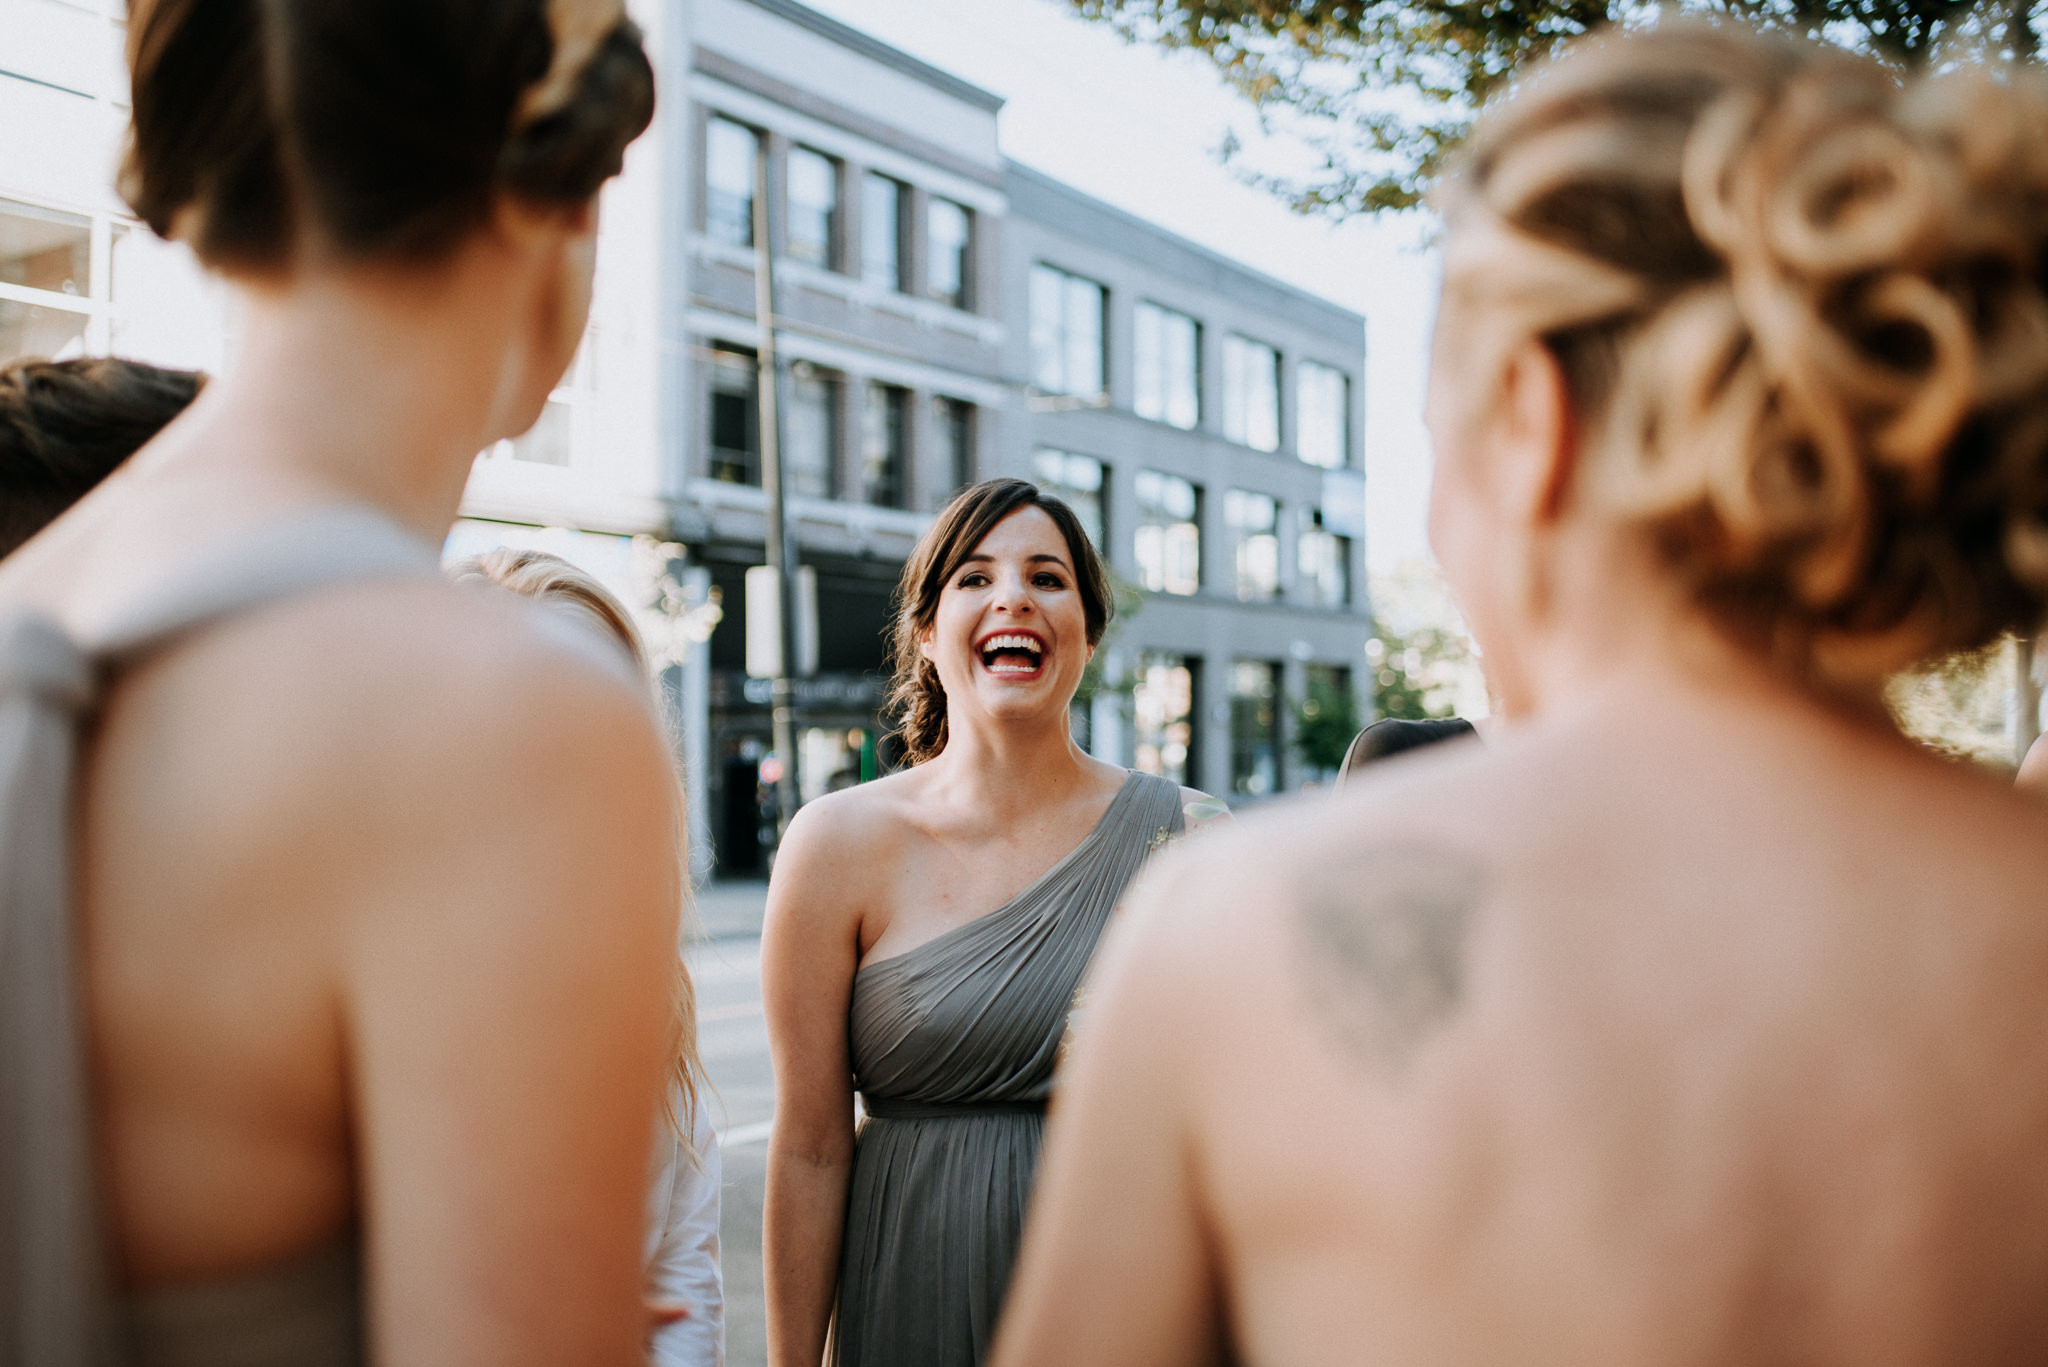 148-vintage-vancouver-gastown-same-sex-wedding-the-permanent-ellesarah-sara-rogers-photography-7980.jpg